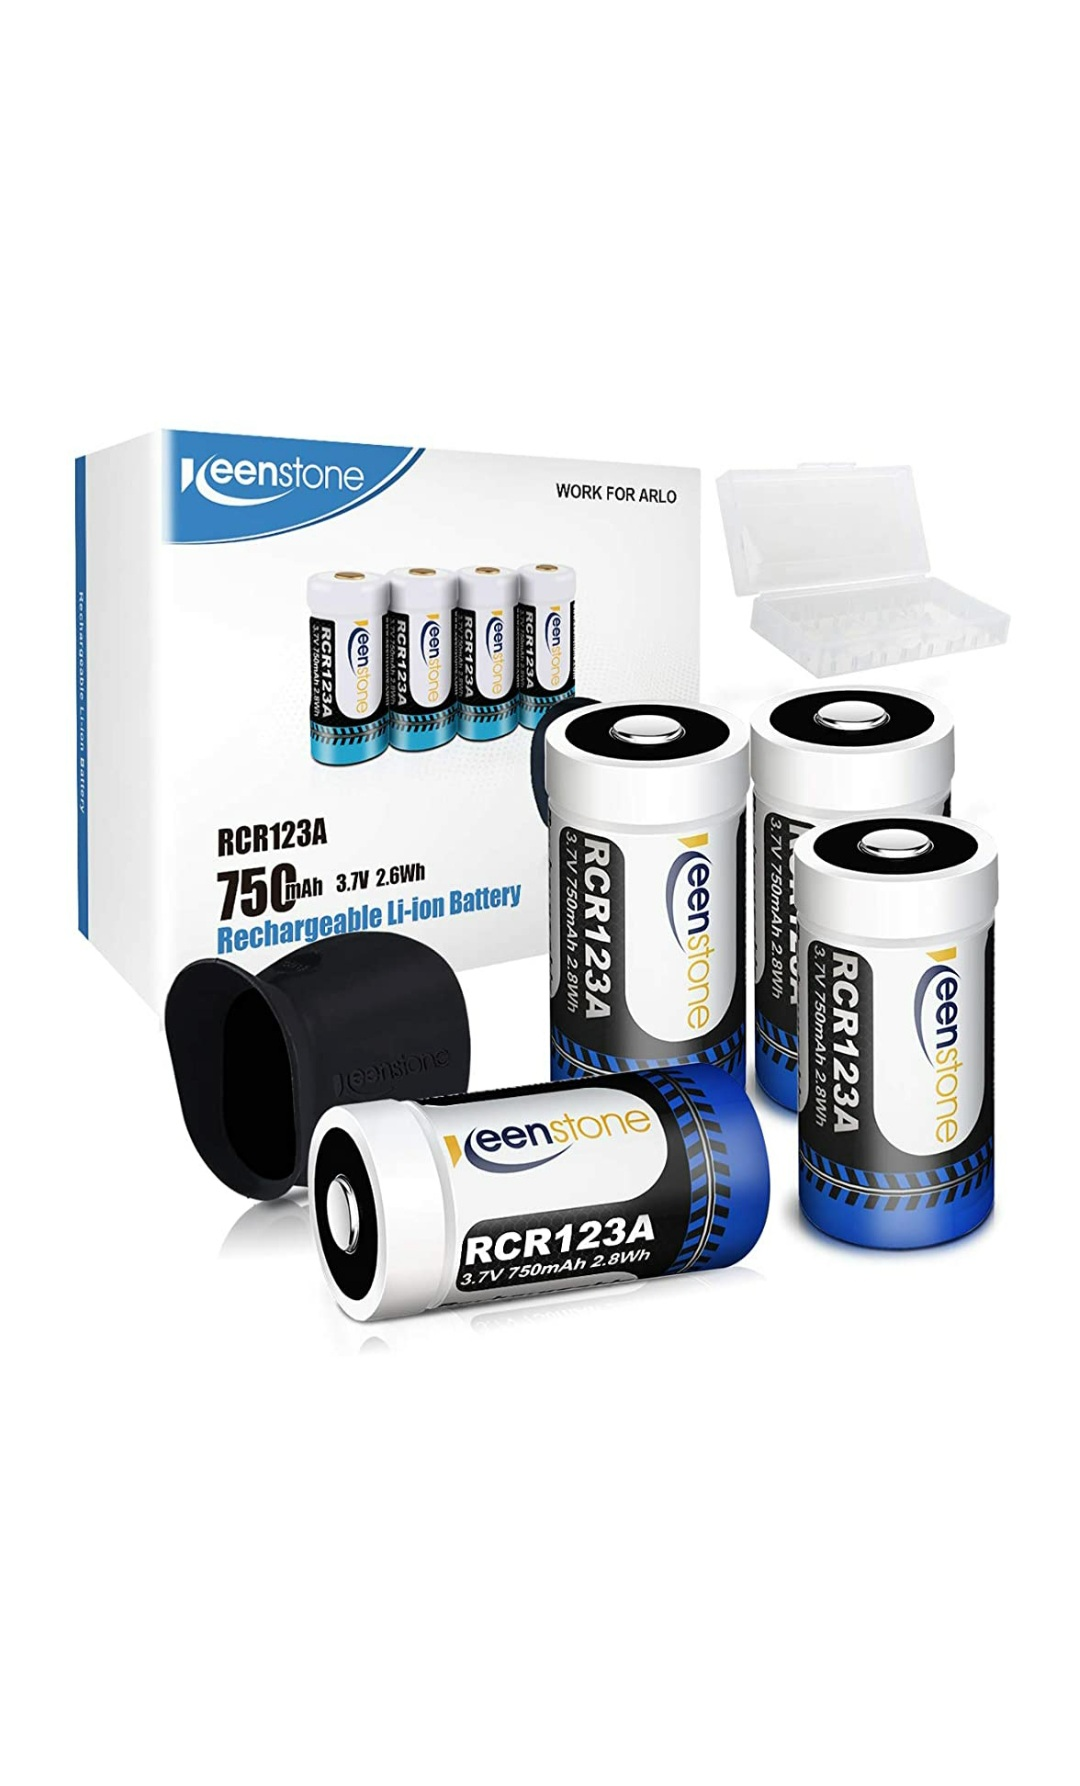 Premium batteries and a great top up set